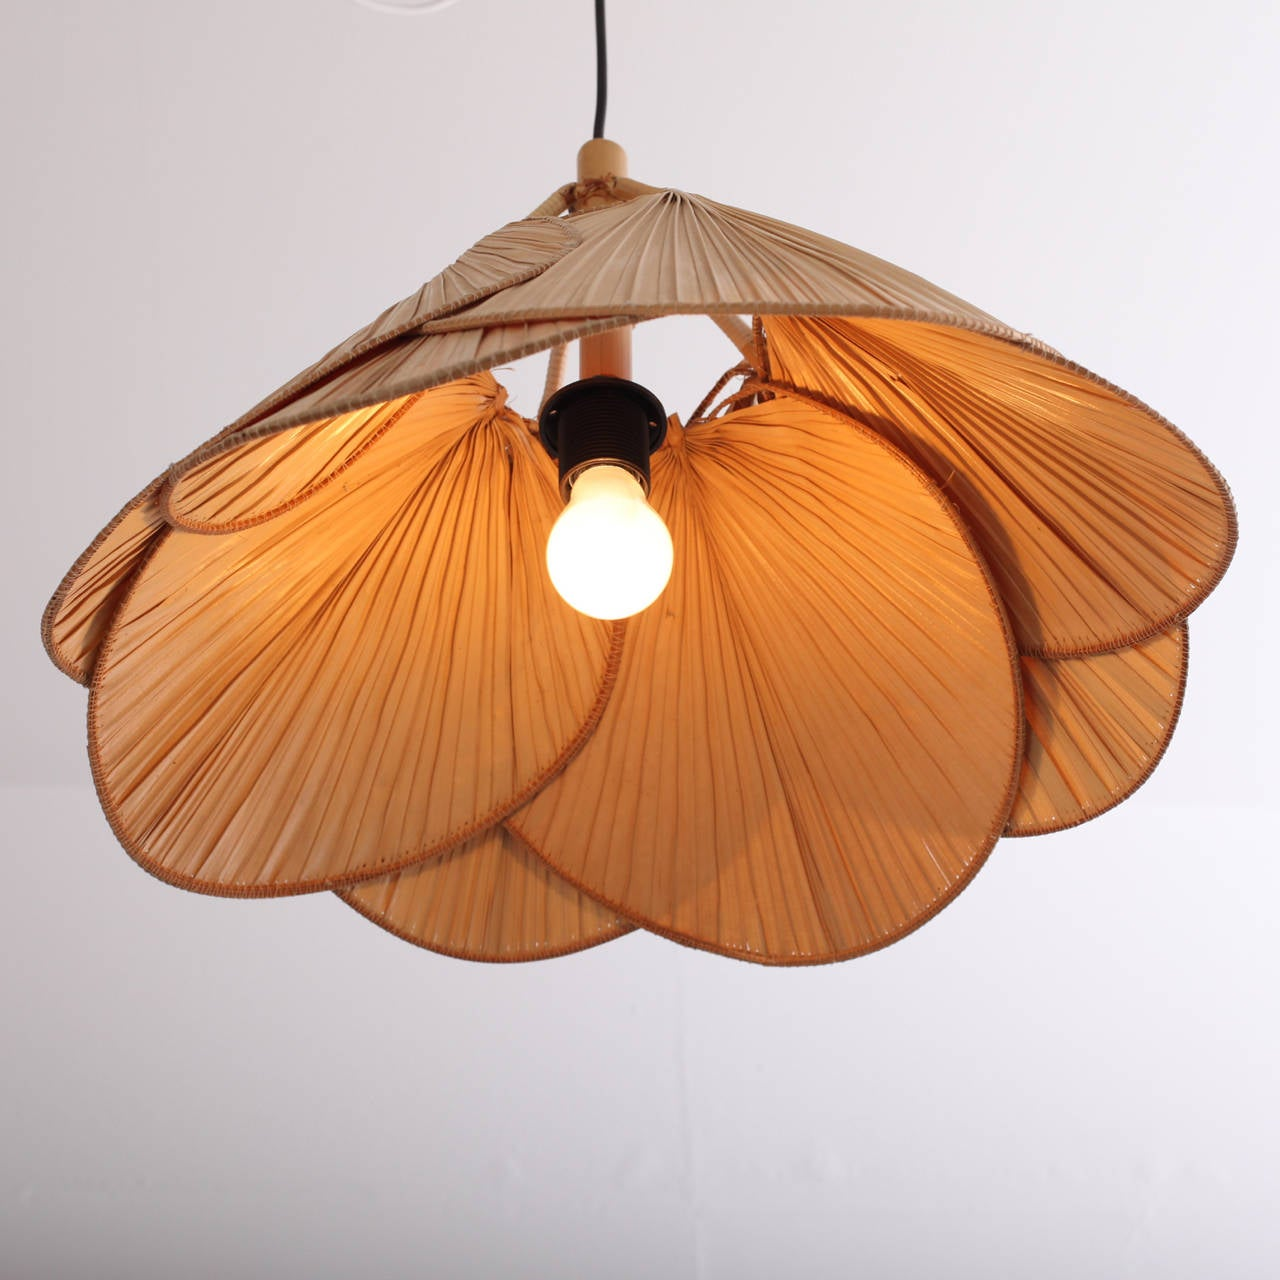 ingo maurer uchiwa pendant lamp at 1stdibs. Black Bedroom Furniture Sets. Home Design Ideas